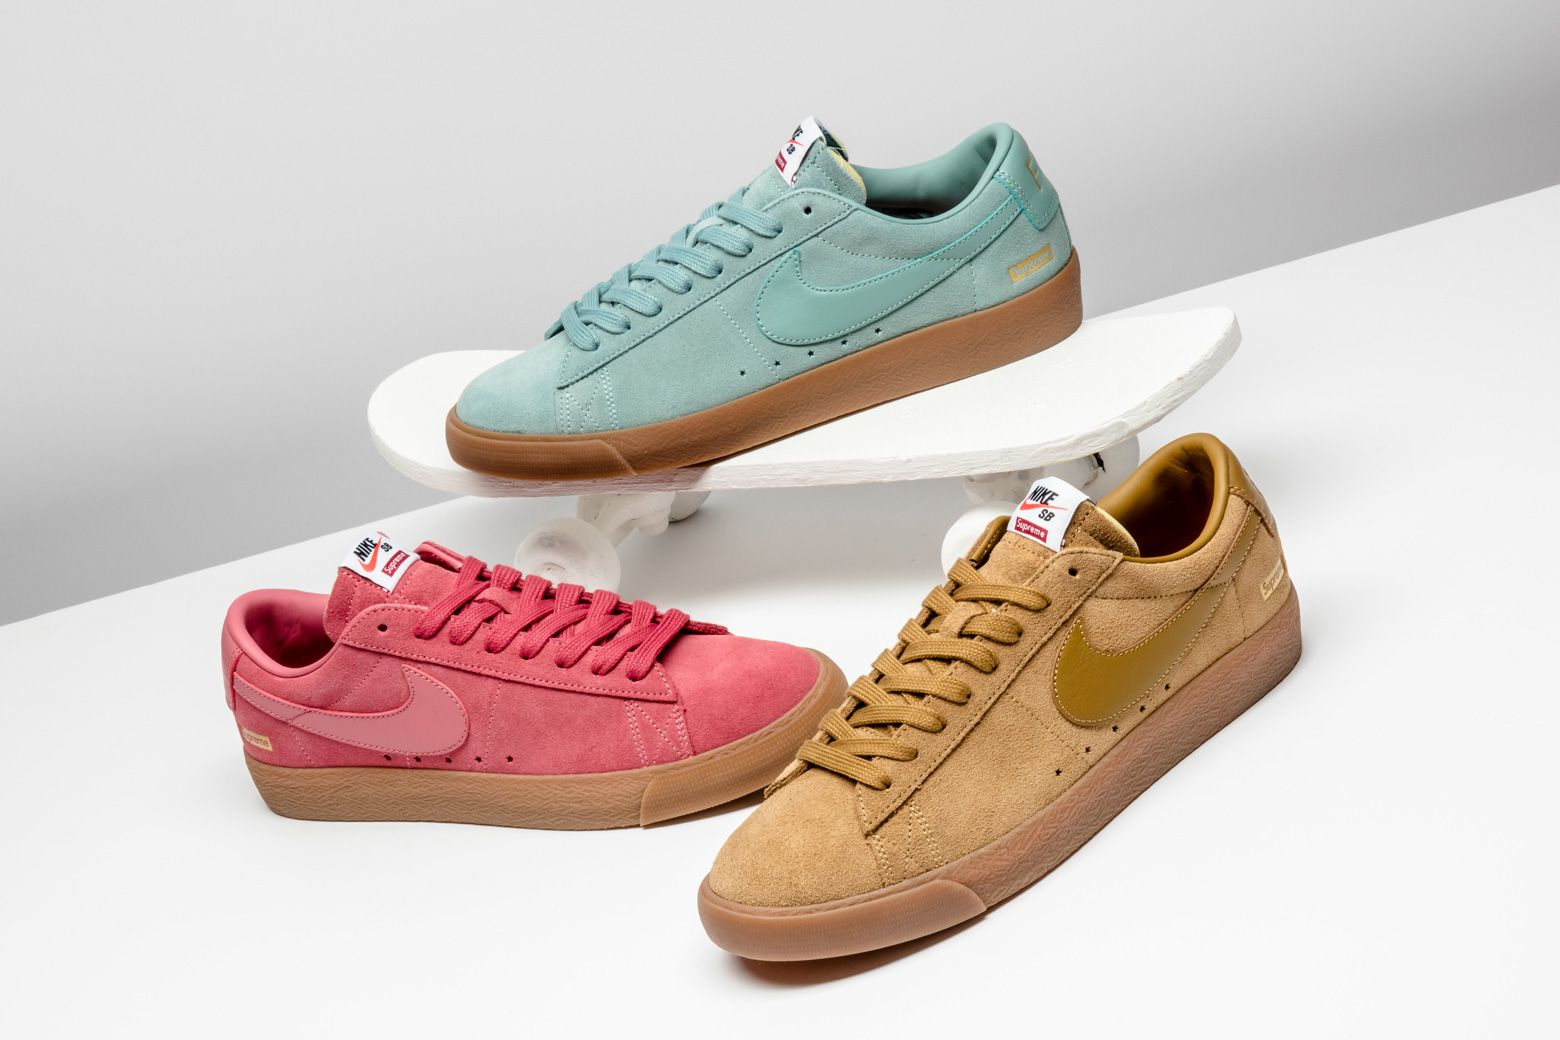 buy online 33a88 43633 Supreme outfitted the Nike SB Blazer Low with a trio of ...